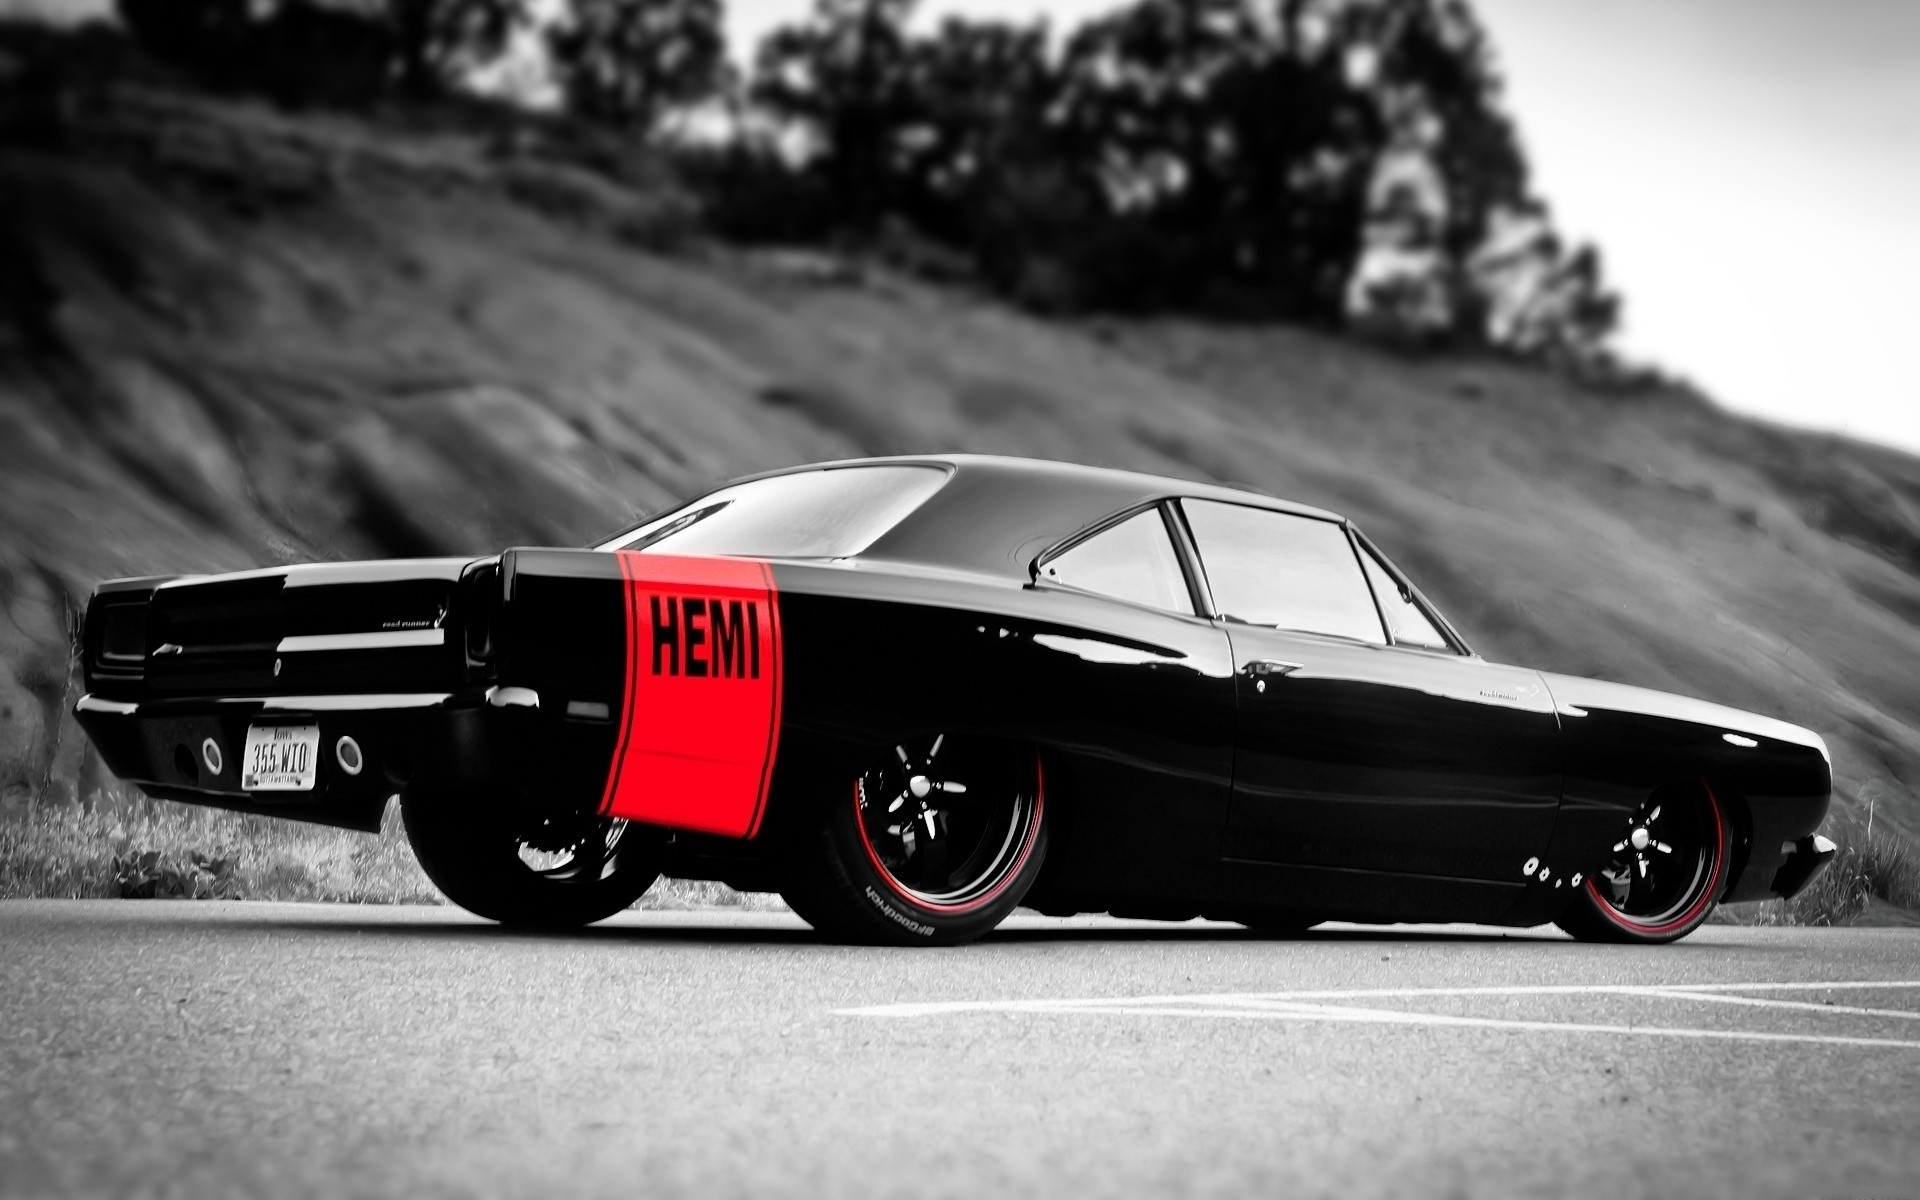 wallpaper cars muscle car images 1920x1200 1920x1200